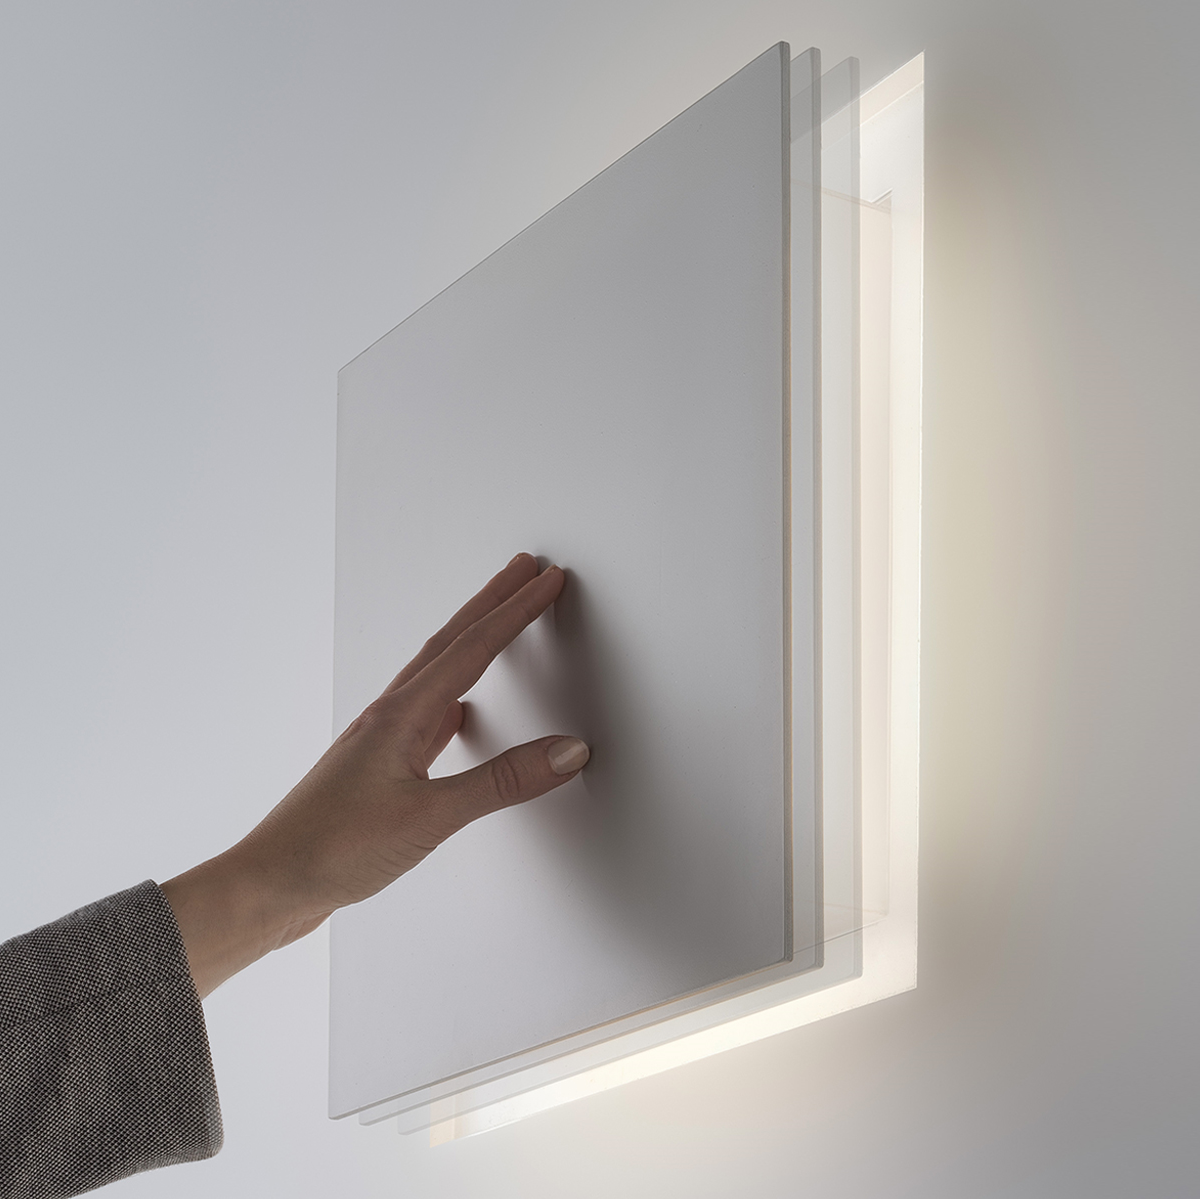 ALDECIMO wall recessed lamp